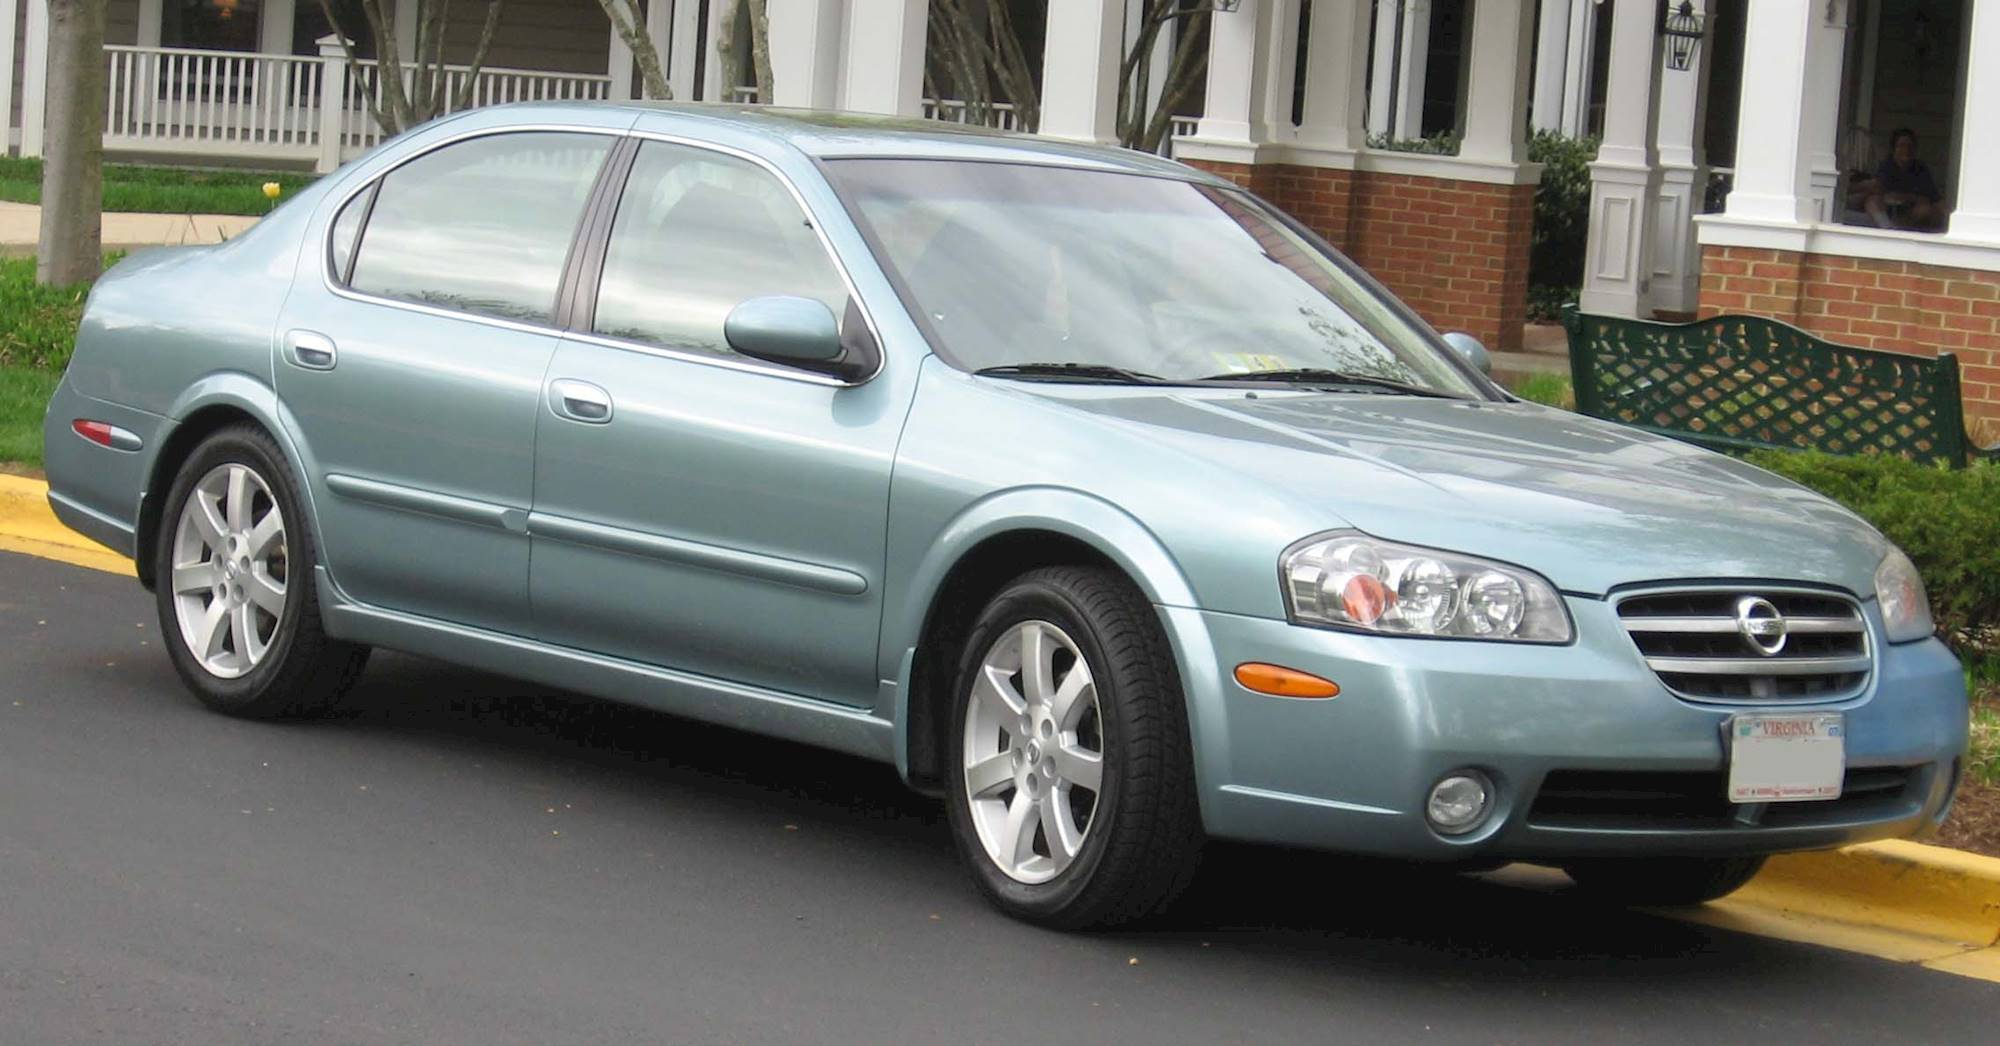 2000 Nissan Maxima Manual Transmission For Sale ✓ Nissan Recomended Car